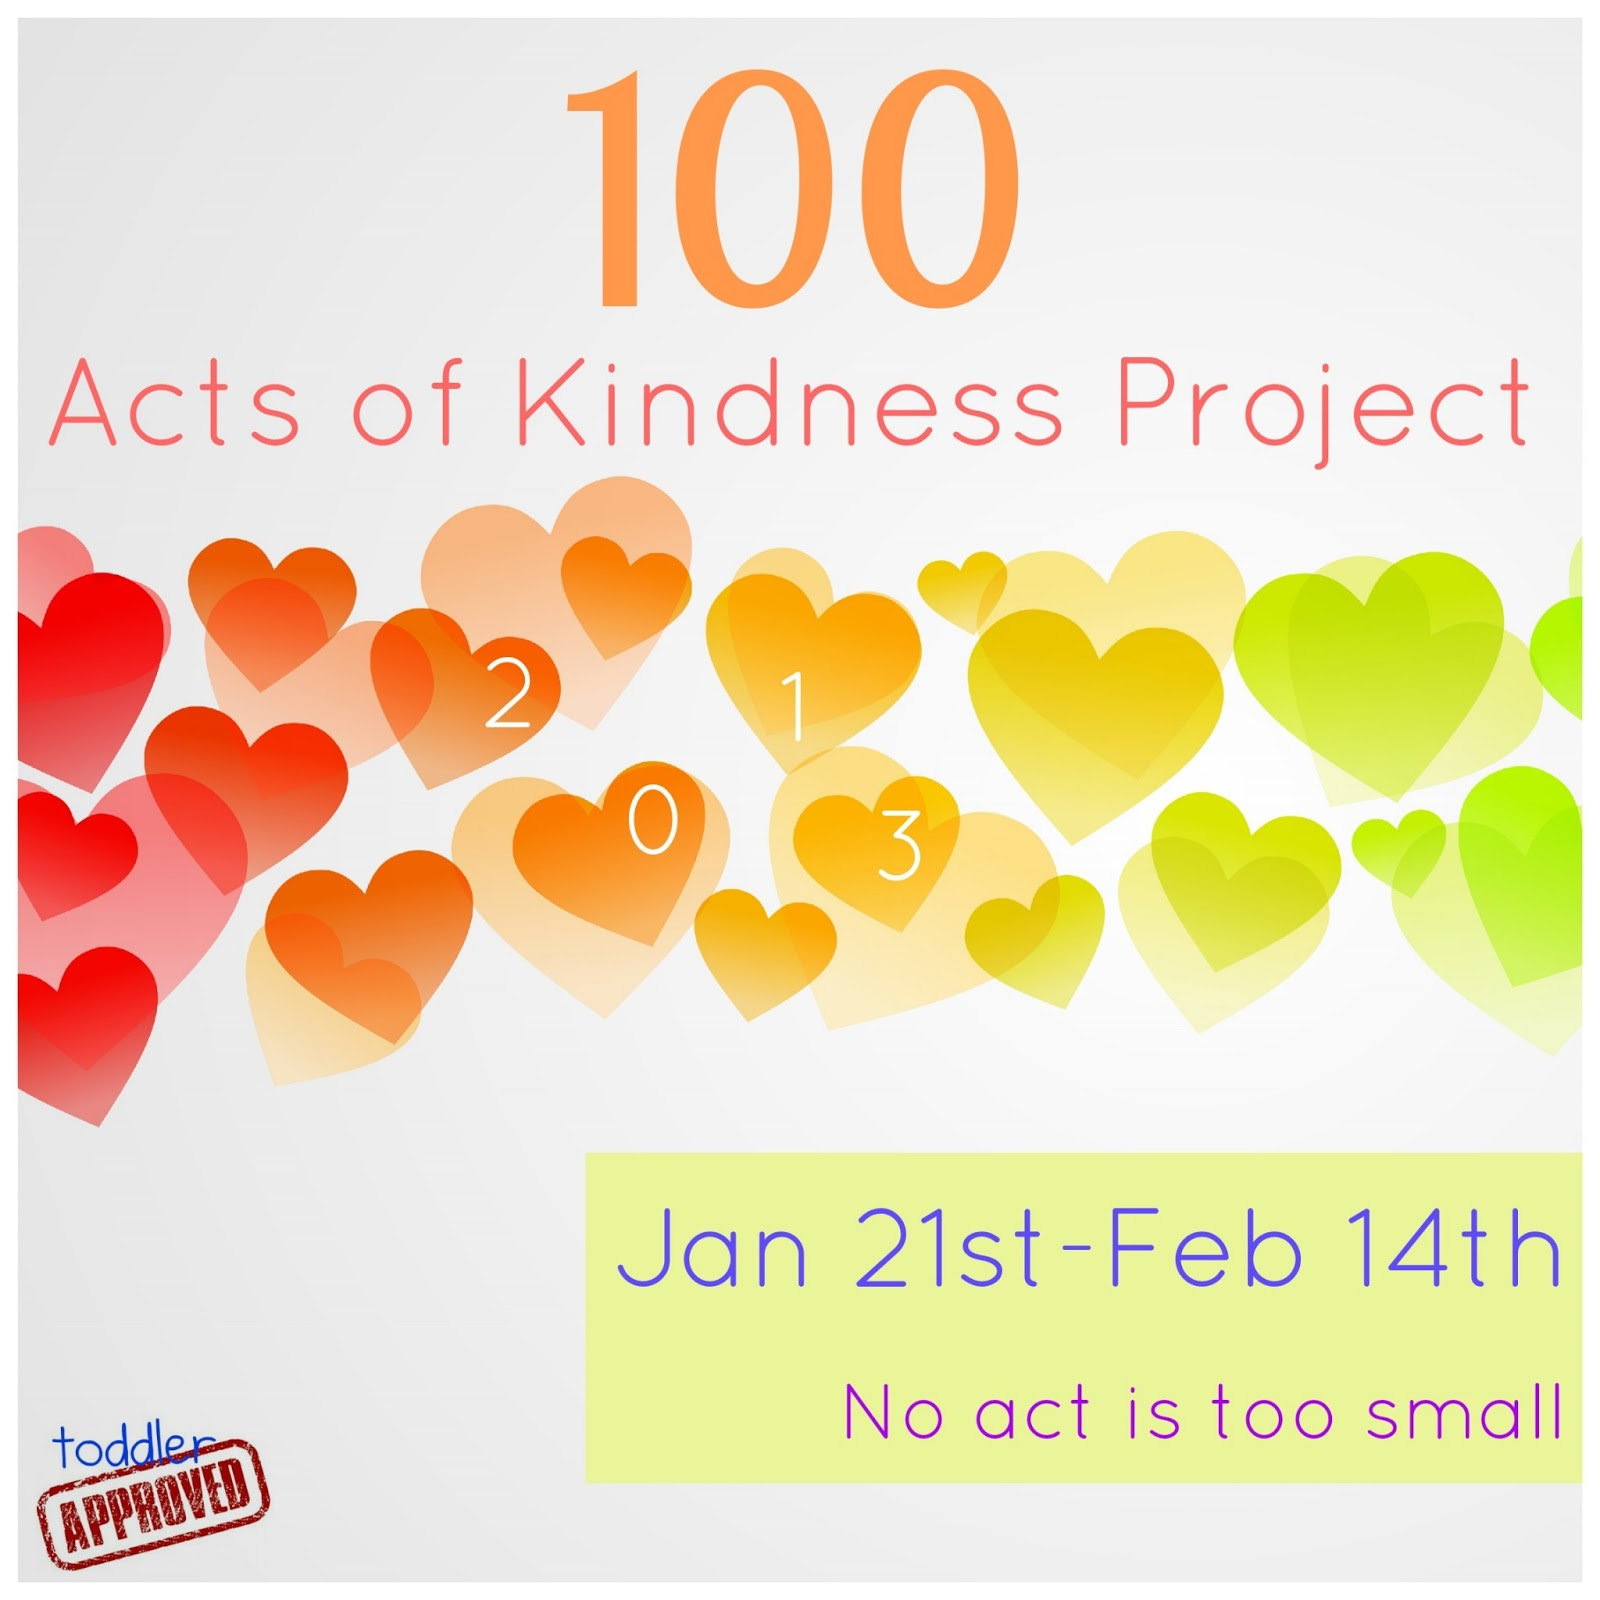 Toddler Approved 100 Acts Of Kindness Project